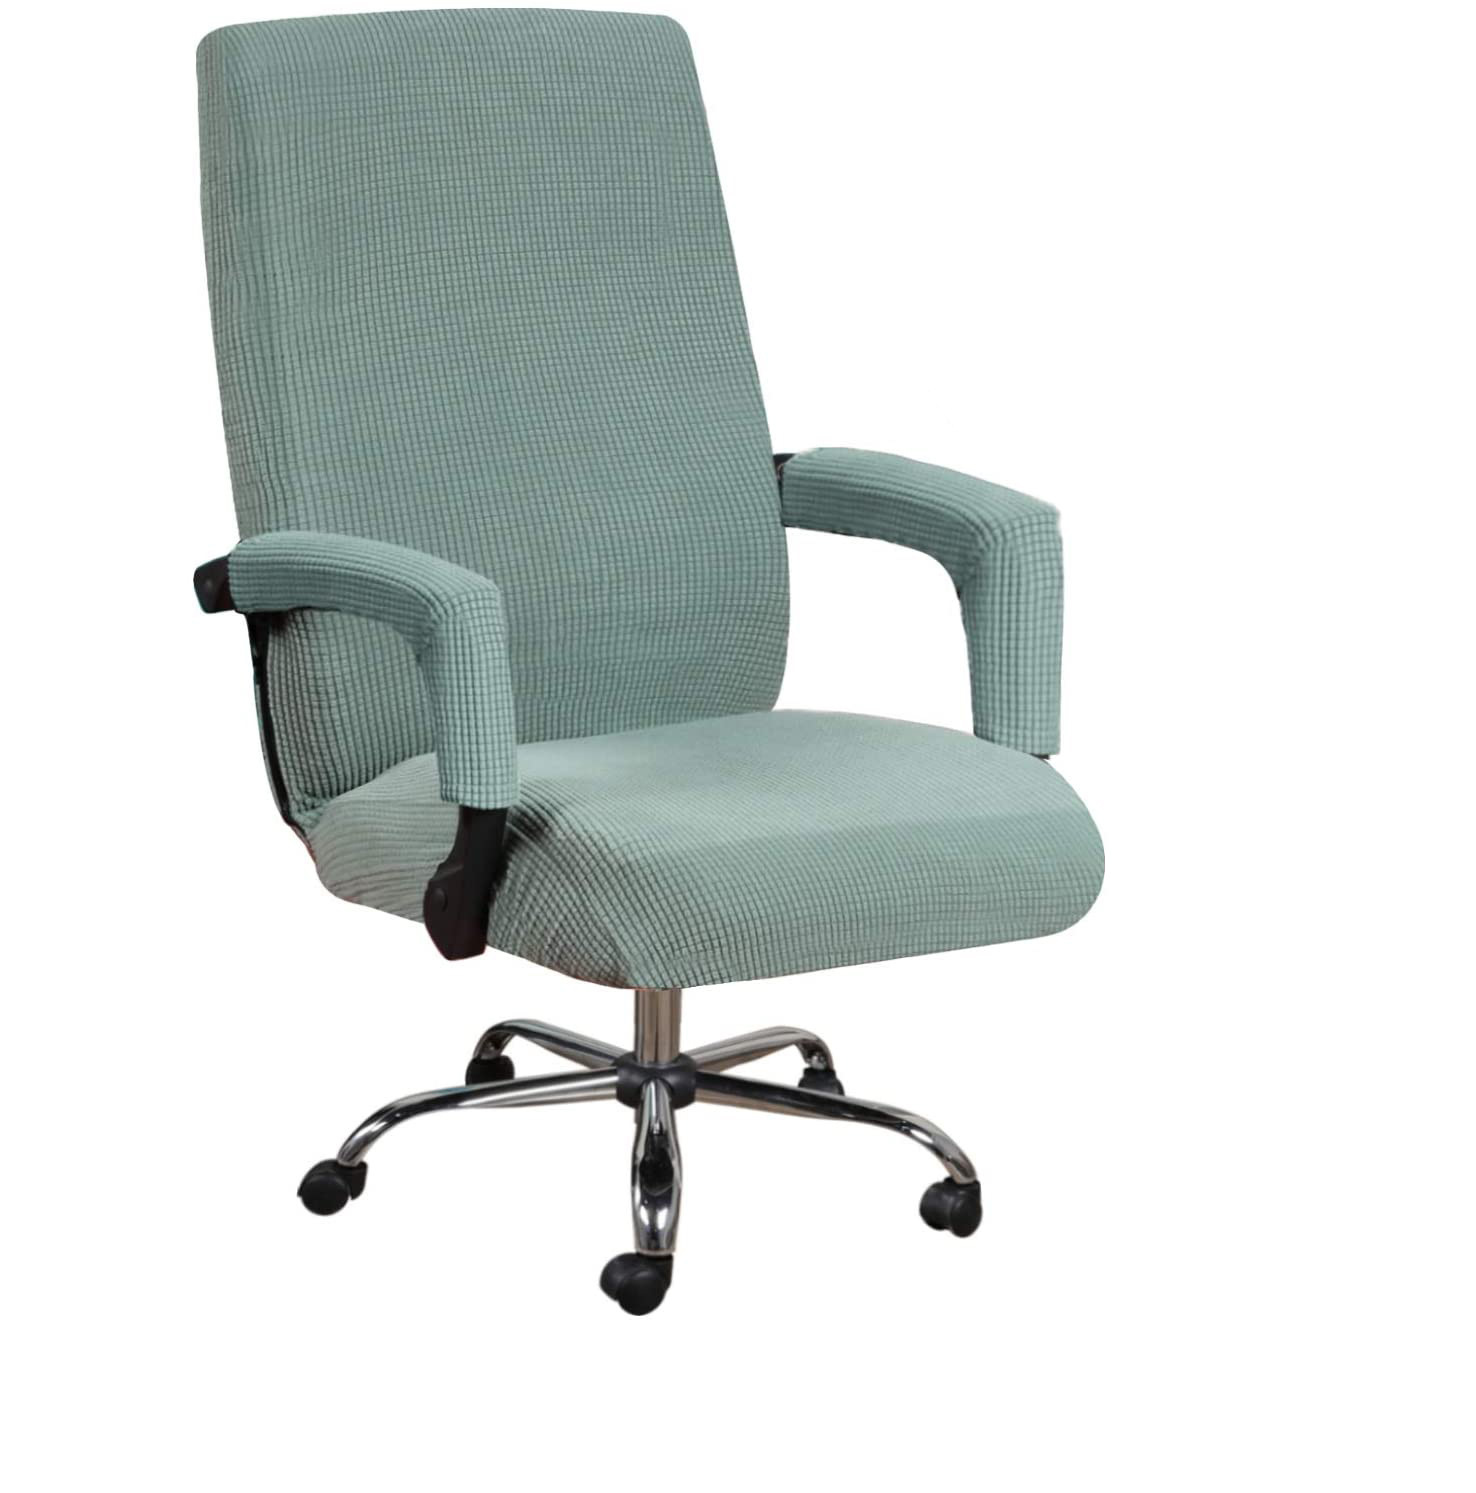 Office Chair Covers Armrest Cover Chairs Protector Trendy Elastic Spandex Solid